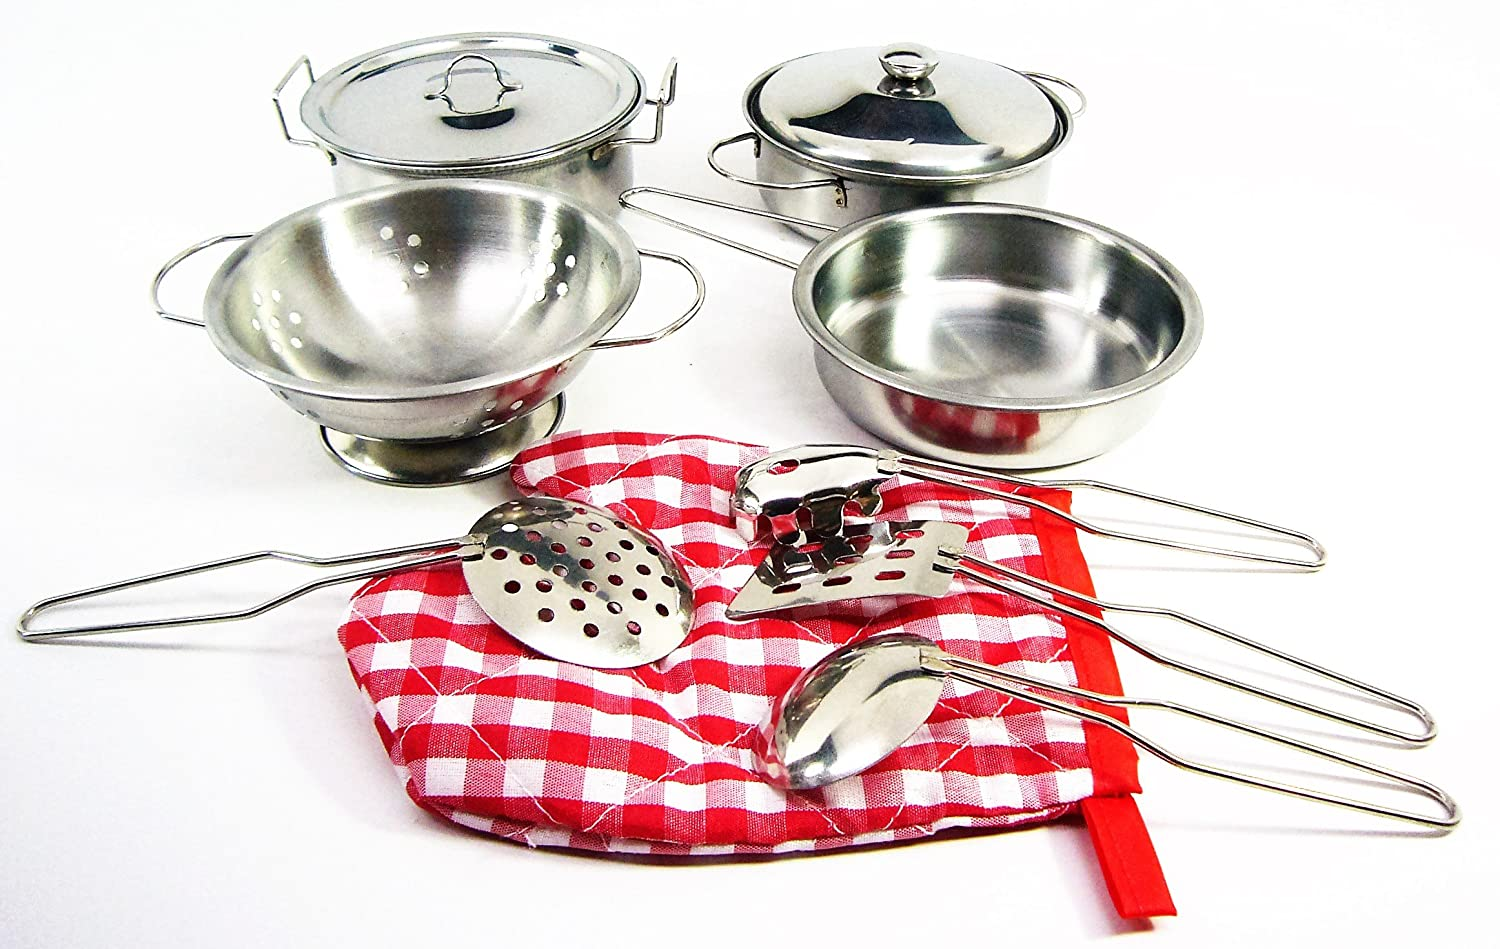 10-piece Playset Metal Pots and Pans Kitchen Cookware for Kids with Cooking Utensils Set Fatherland Shop